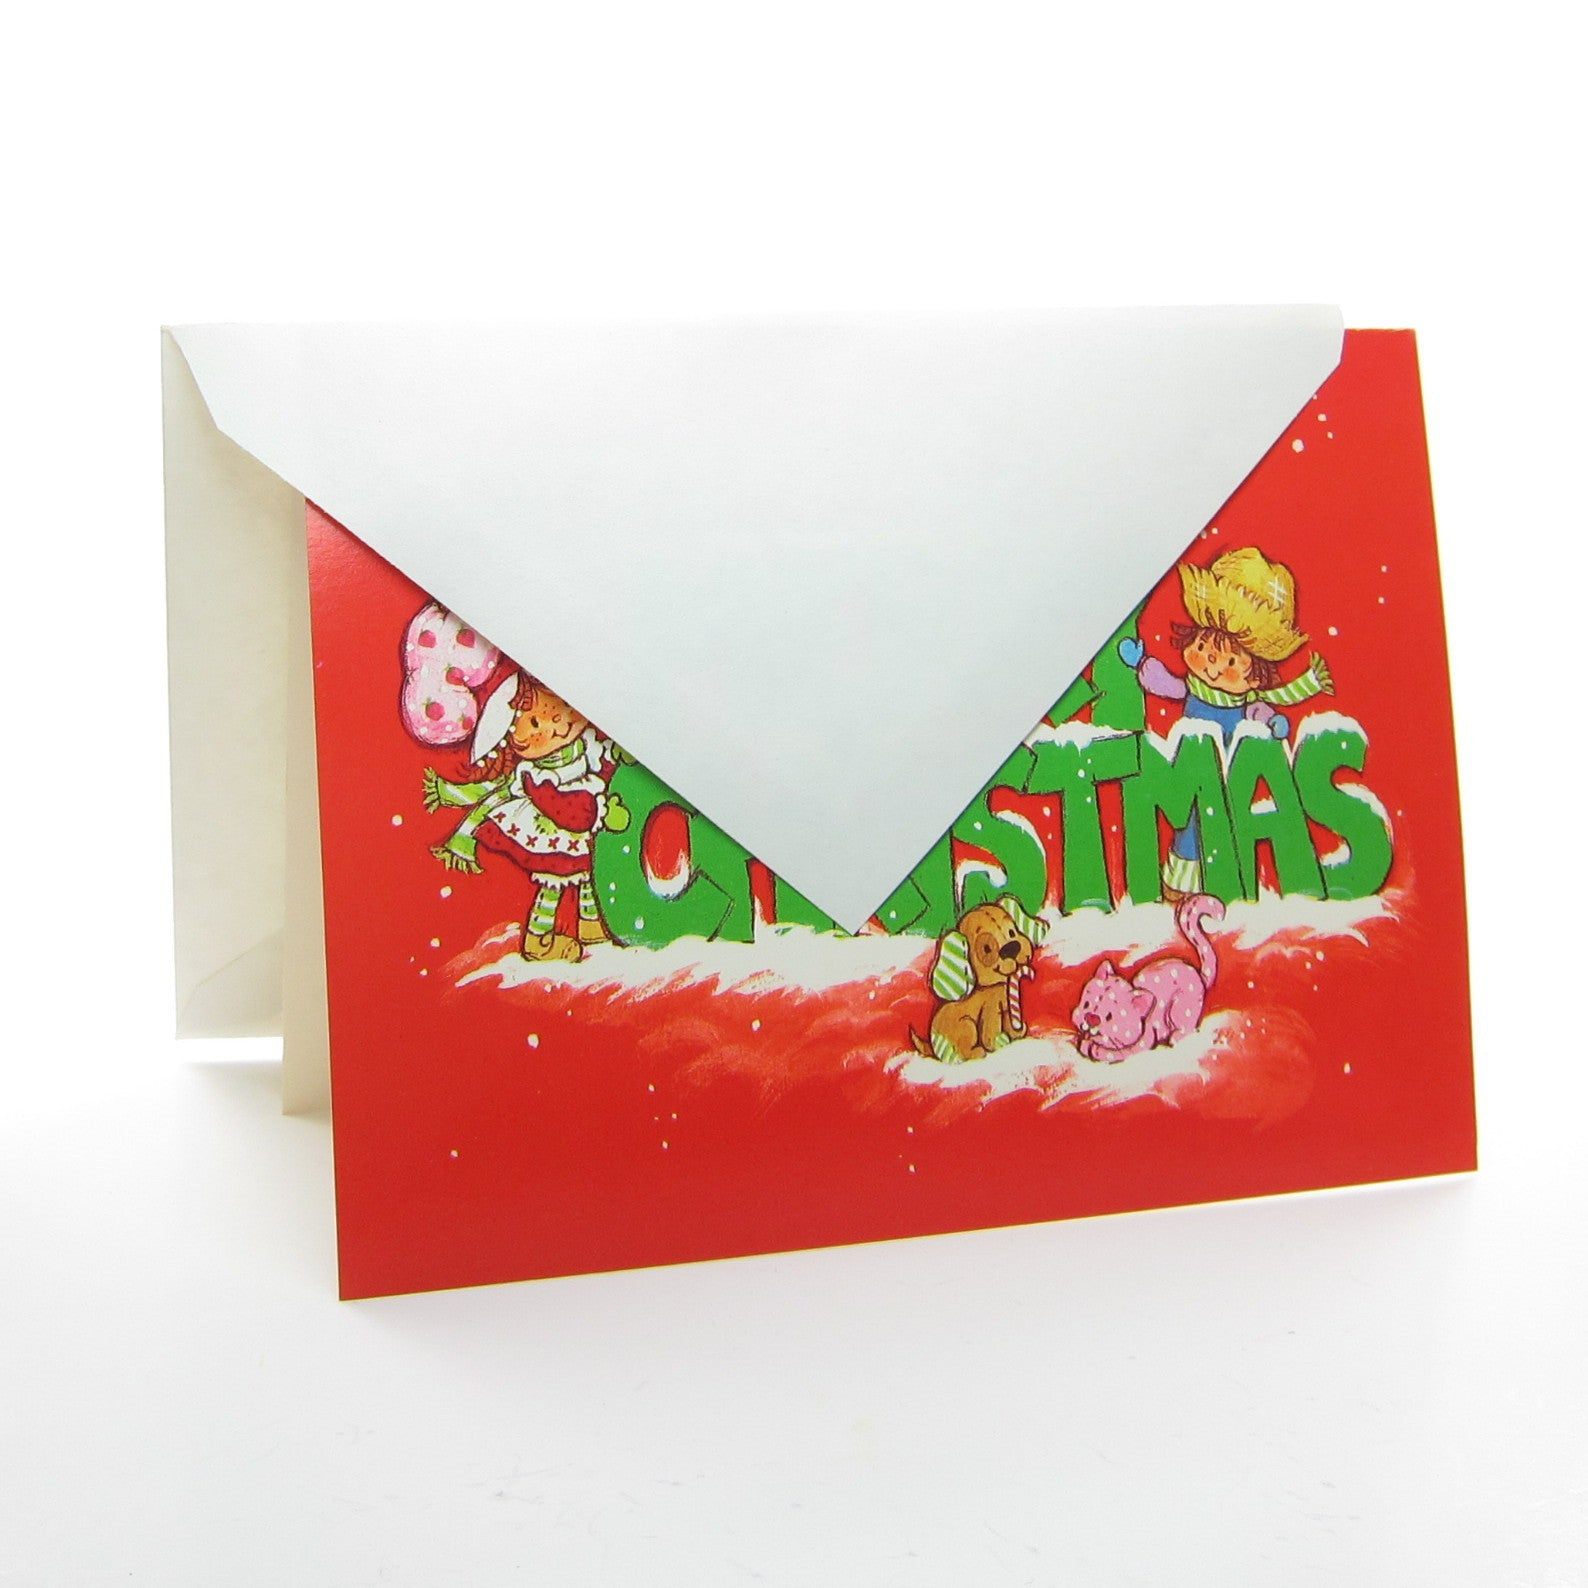 Merry Christmas Strawberry Shortcake Holiday Greeting Card With